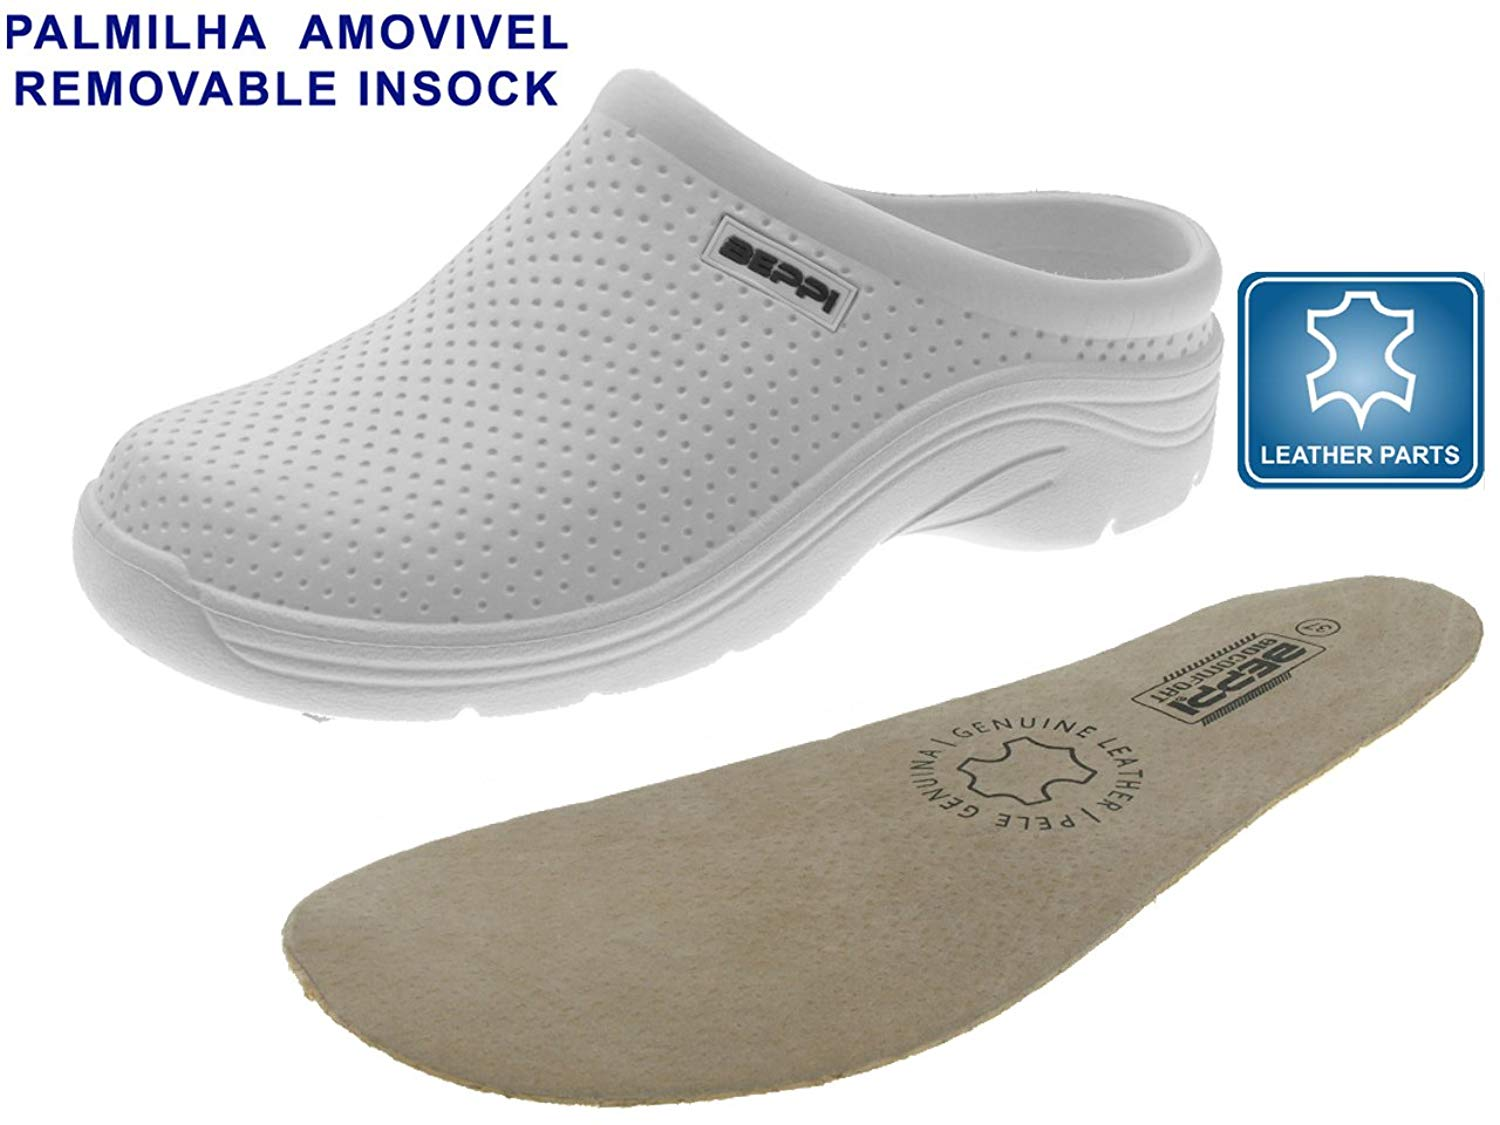 EVA Clog, Lightweight Breathable Leather Insole For Men & Women | Suitable For Medical Professionals, Warehouse & Office Use